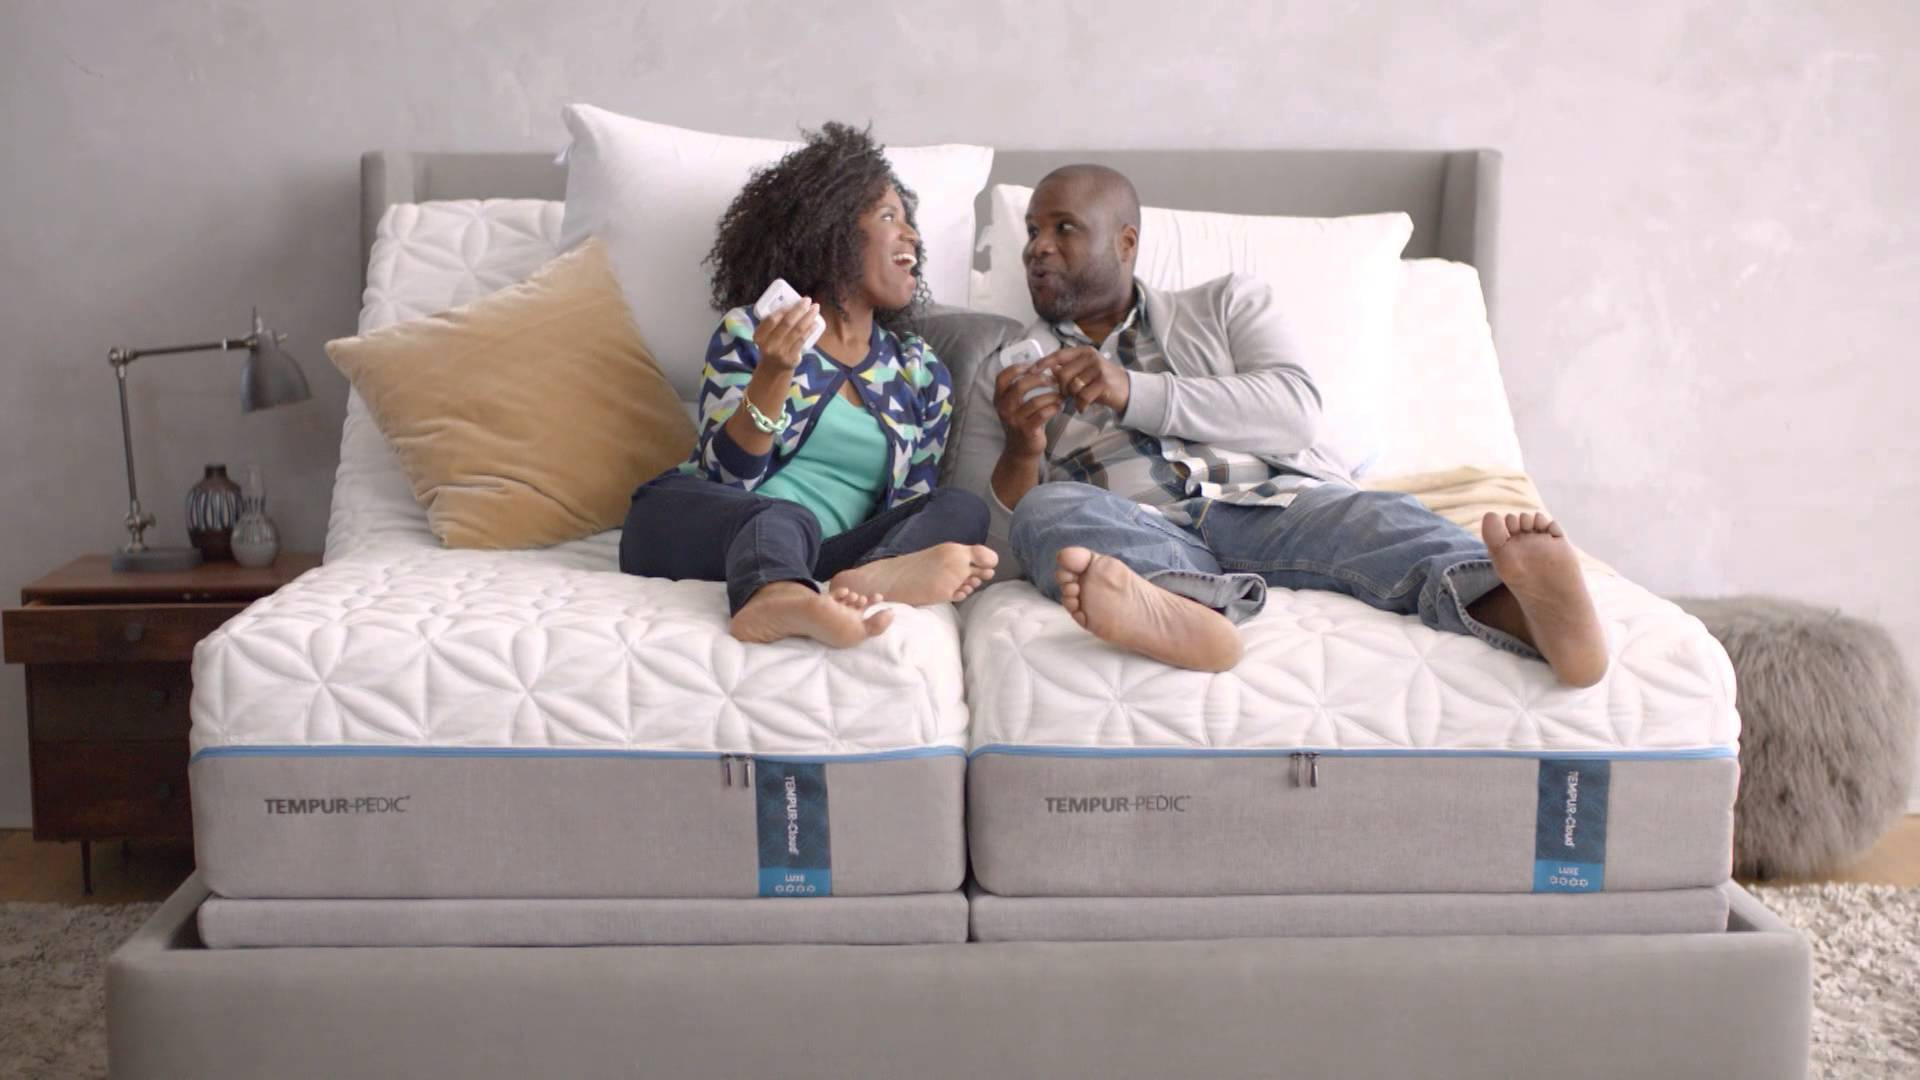 There S Nothing Like My Tempur Pedic Commercial Song